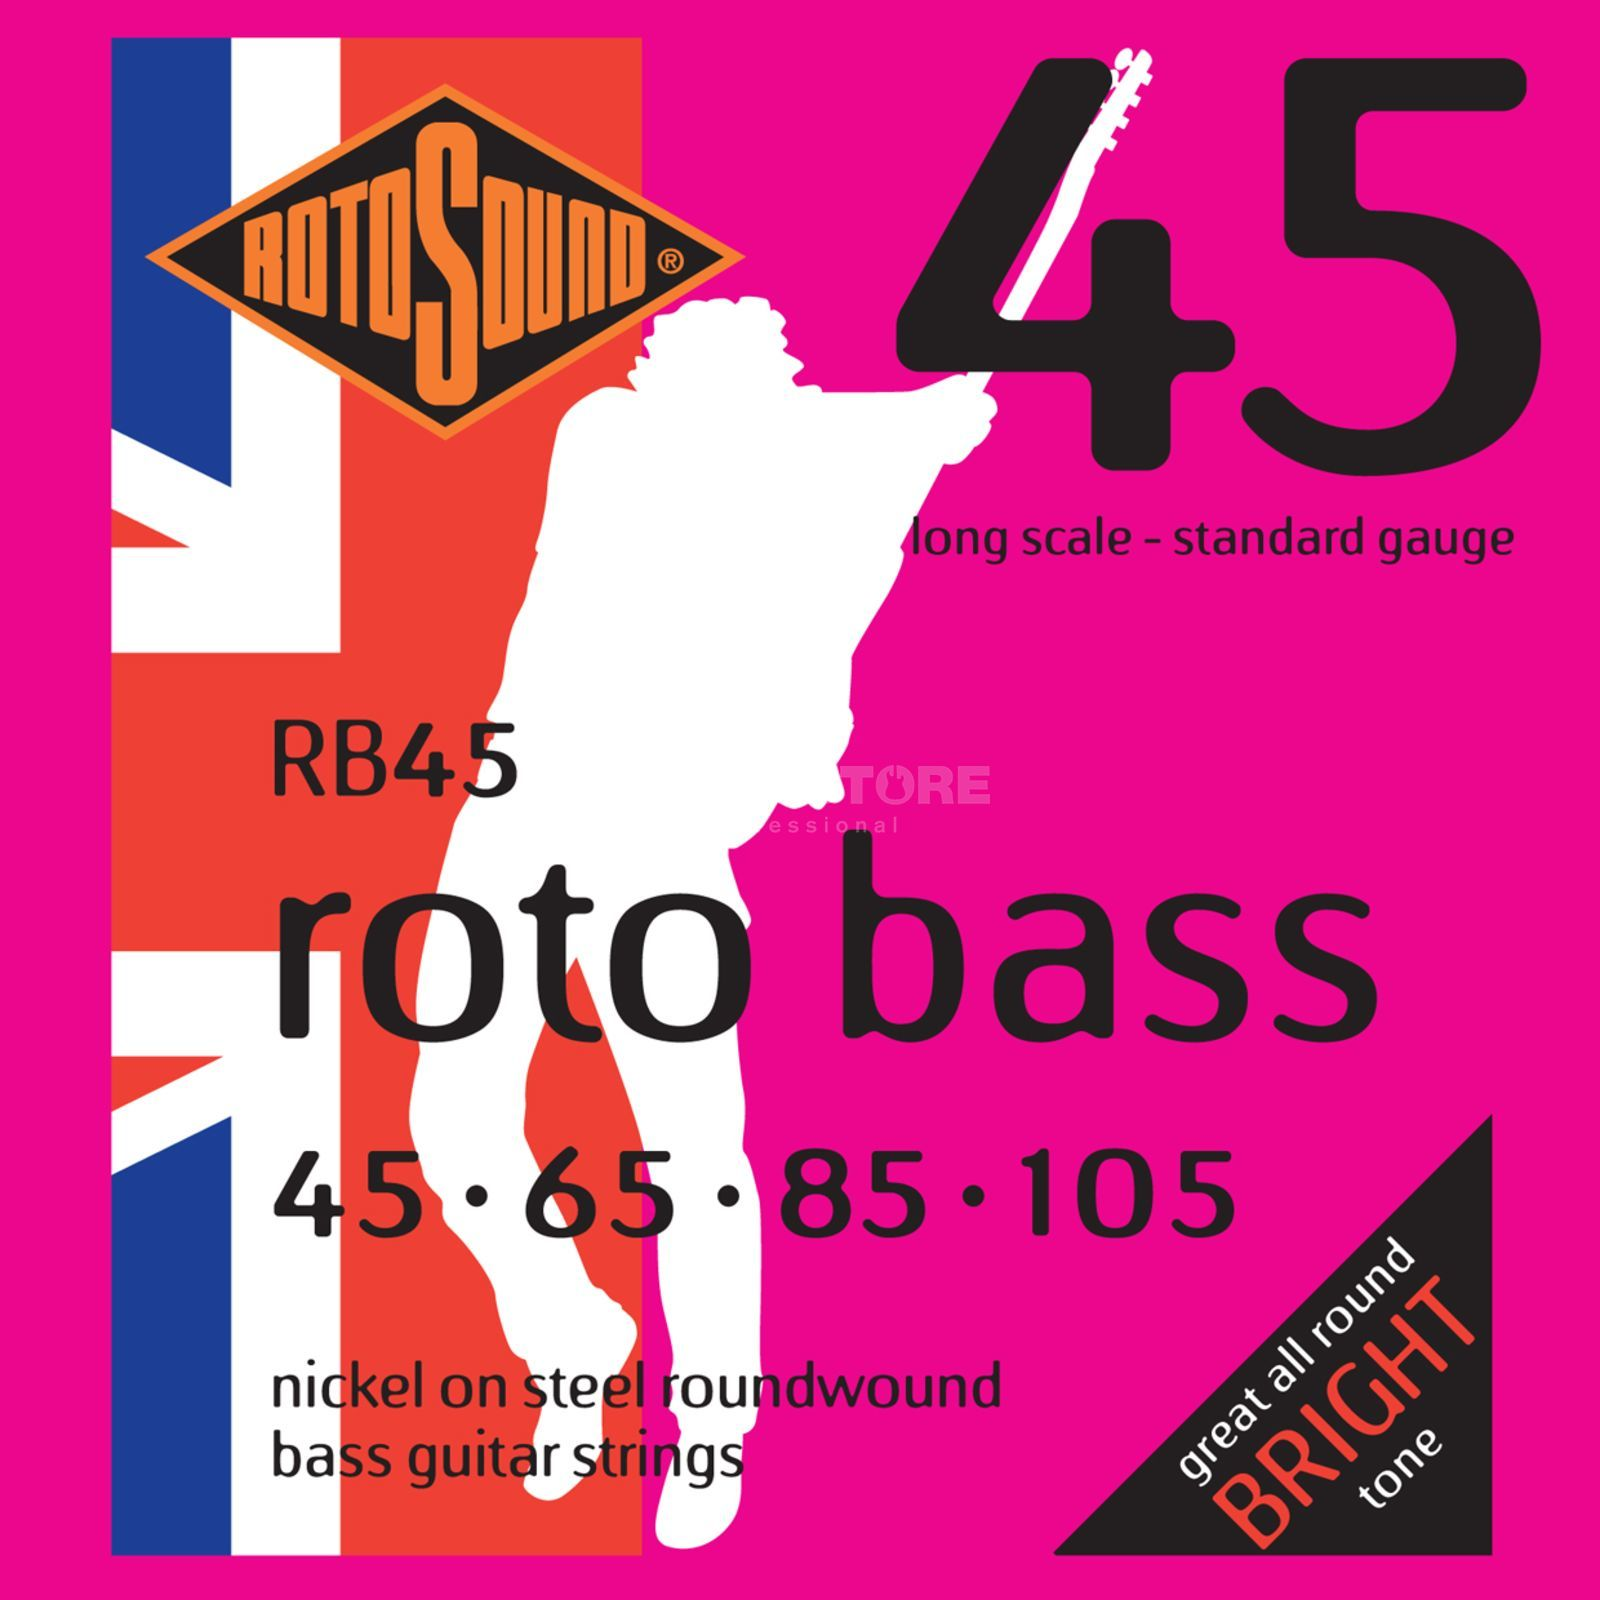 Rotosound RB45 RotoBass Nickel Bass Guit ar Strings 45-105   Product Image